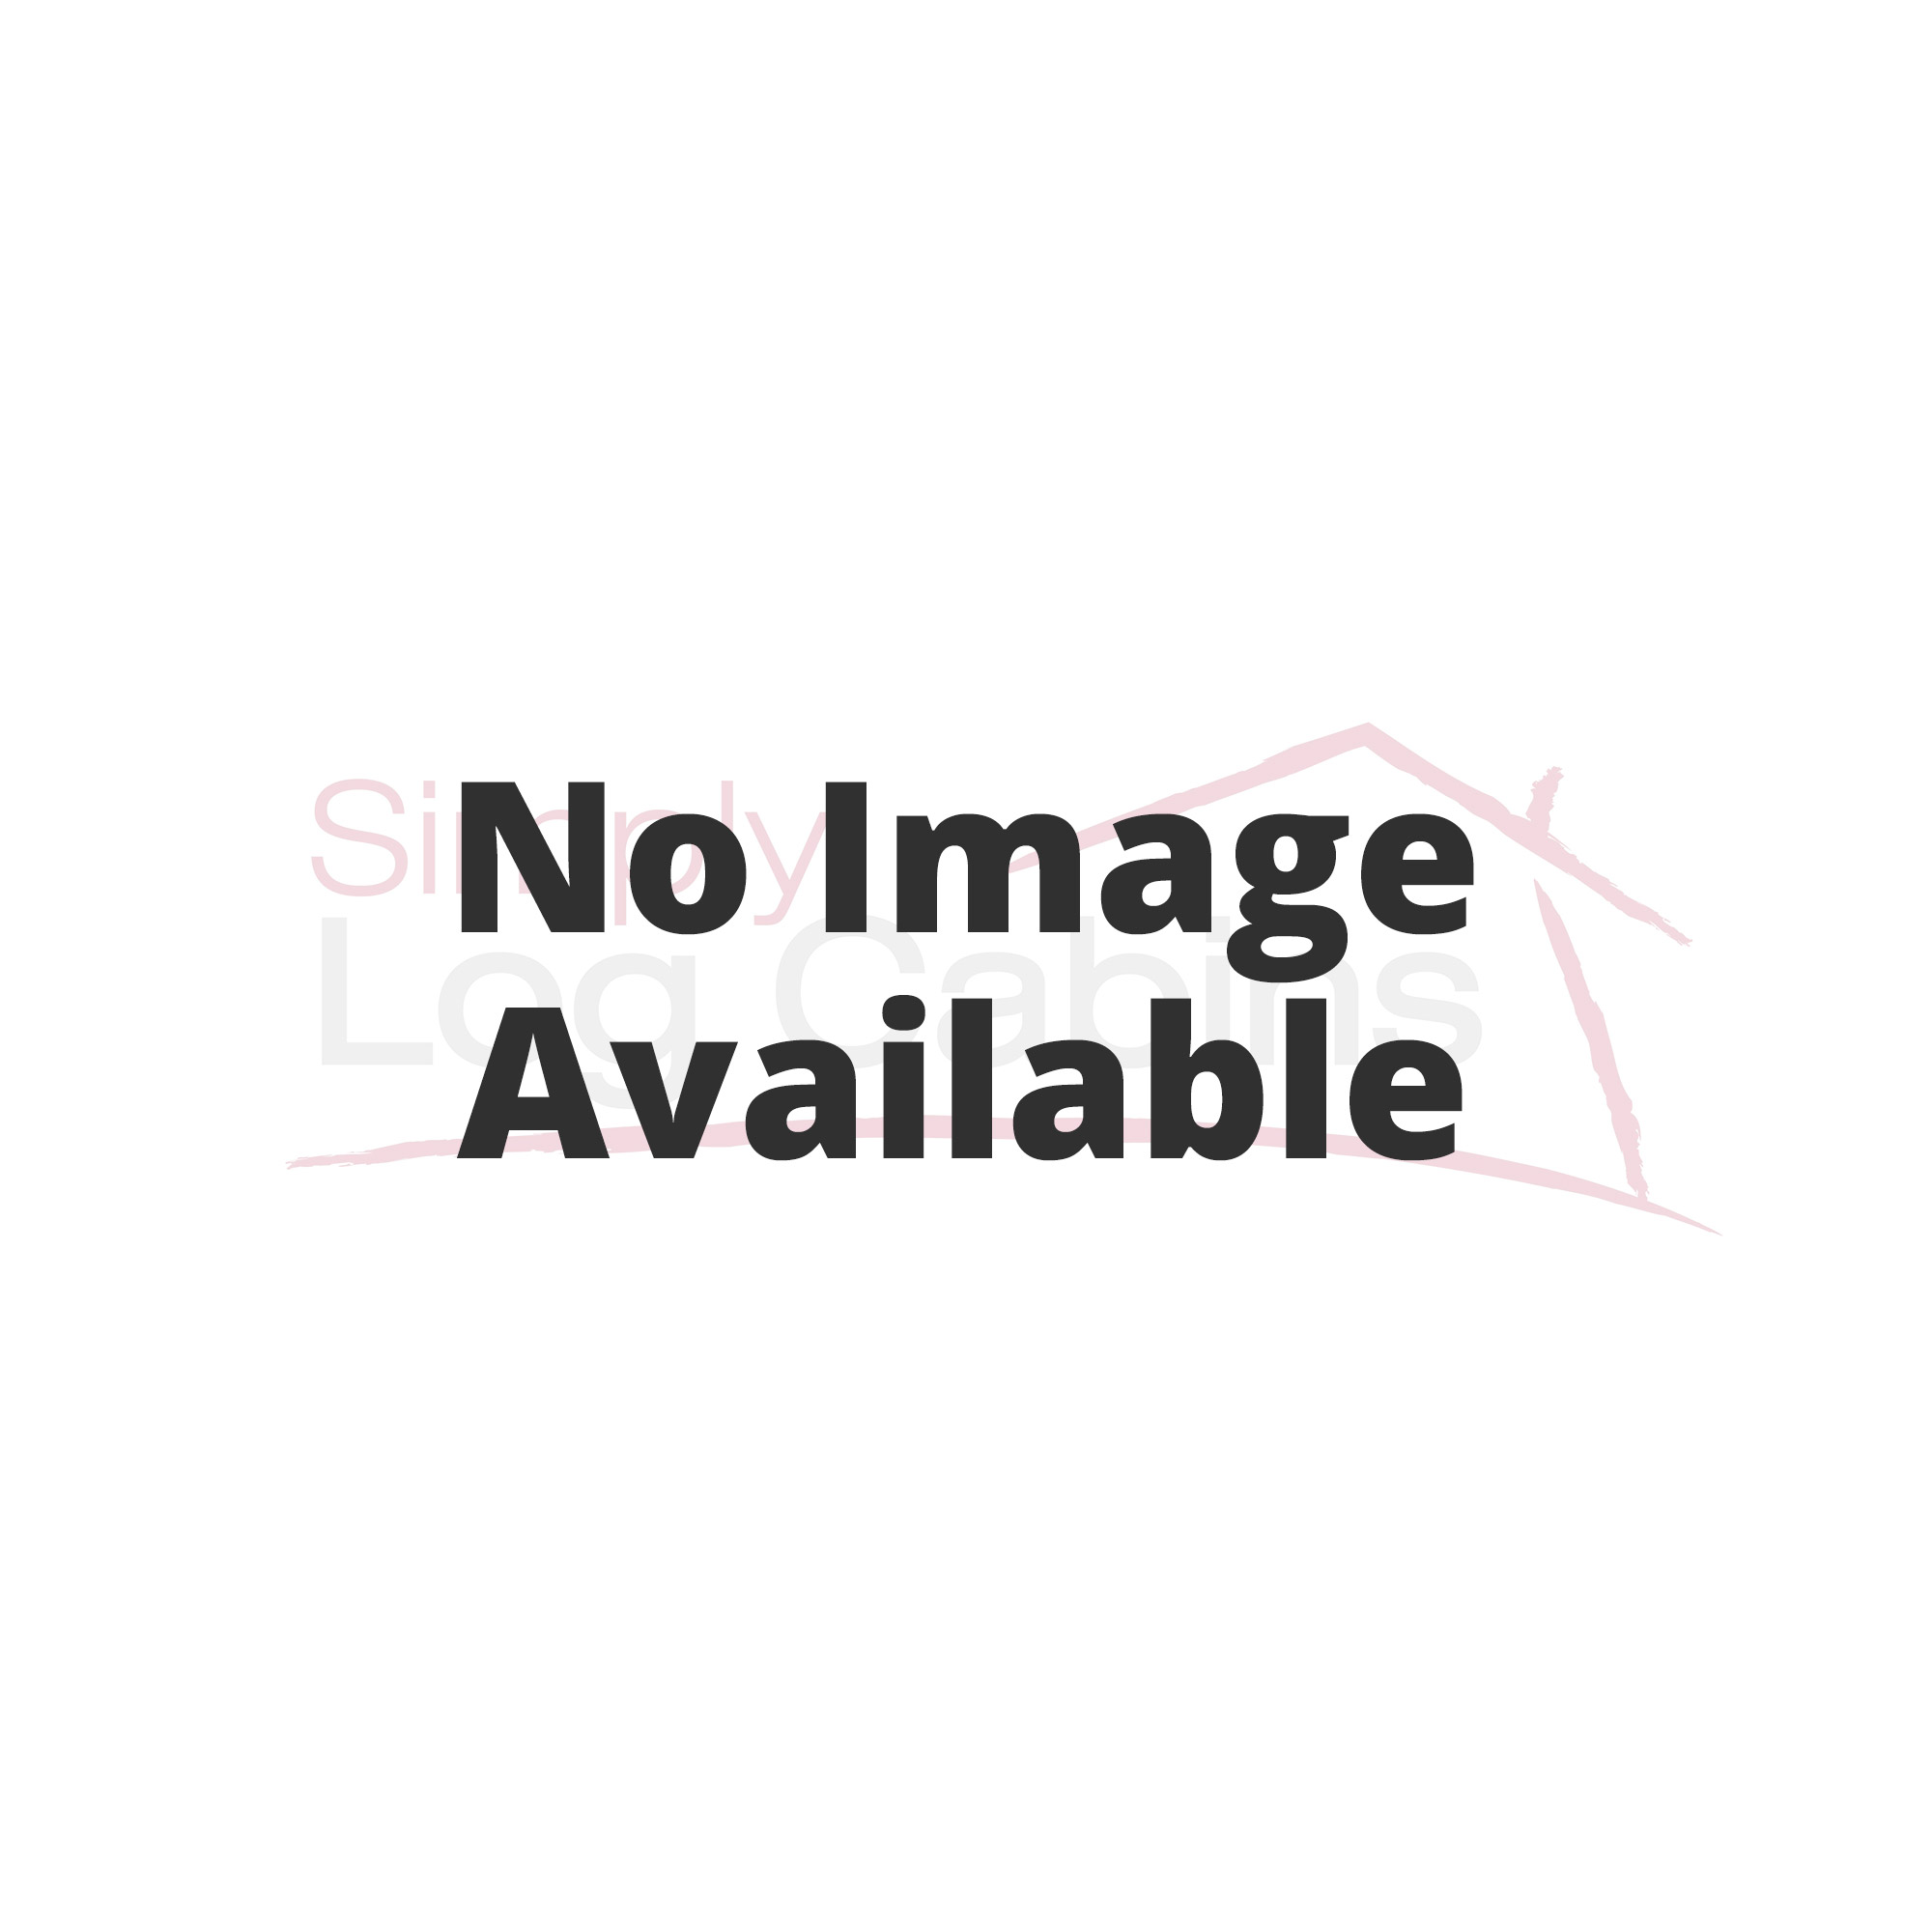 Timber Garden Gazebo Octagonal Gazebo and Hexagonal Gazebo 6 and